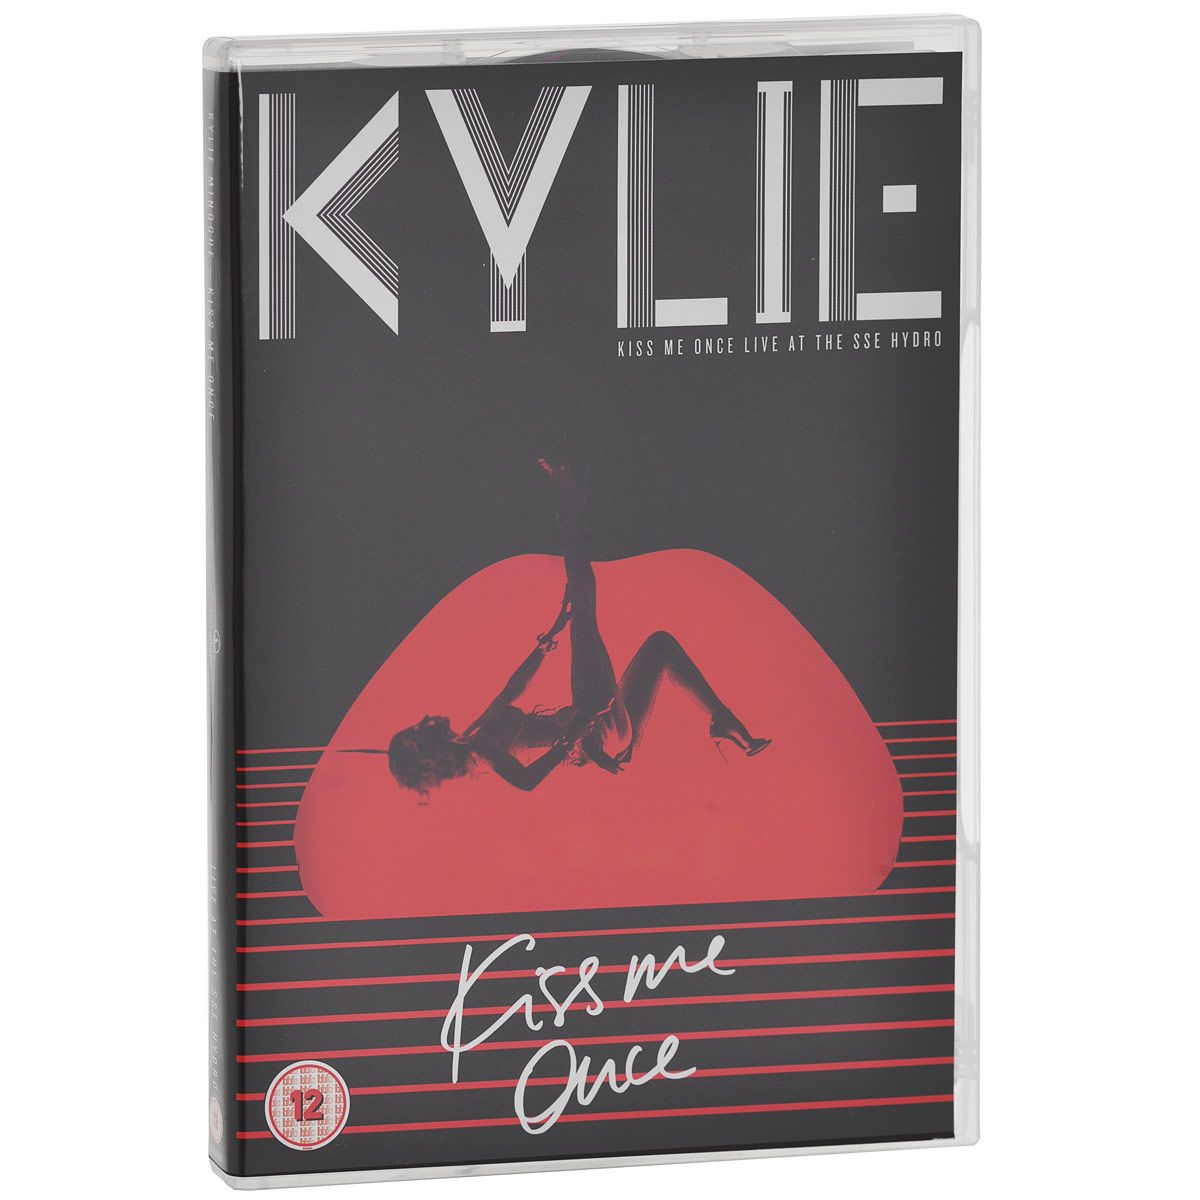 Кайли Миноуг Kylie Minogue. Kiss Me Once Live At The SSE Hydro (2 CD + DVD) the best of kylie minogue special edition cd dvd